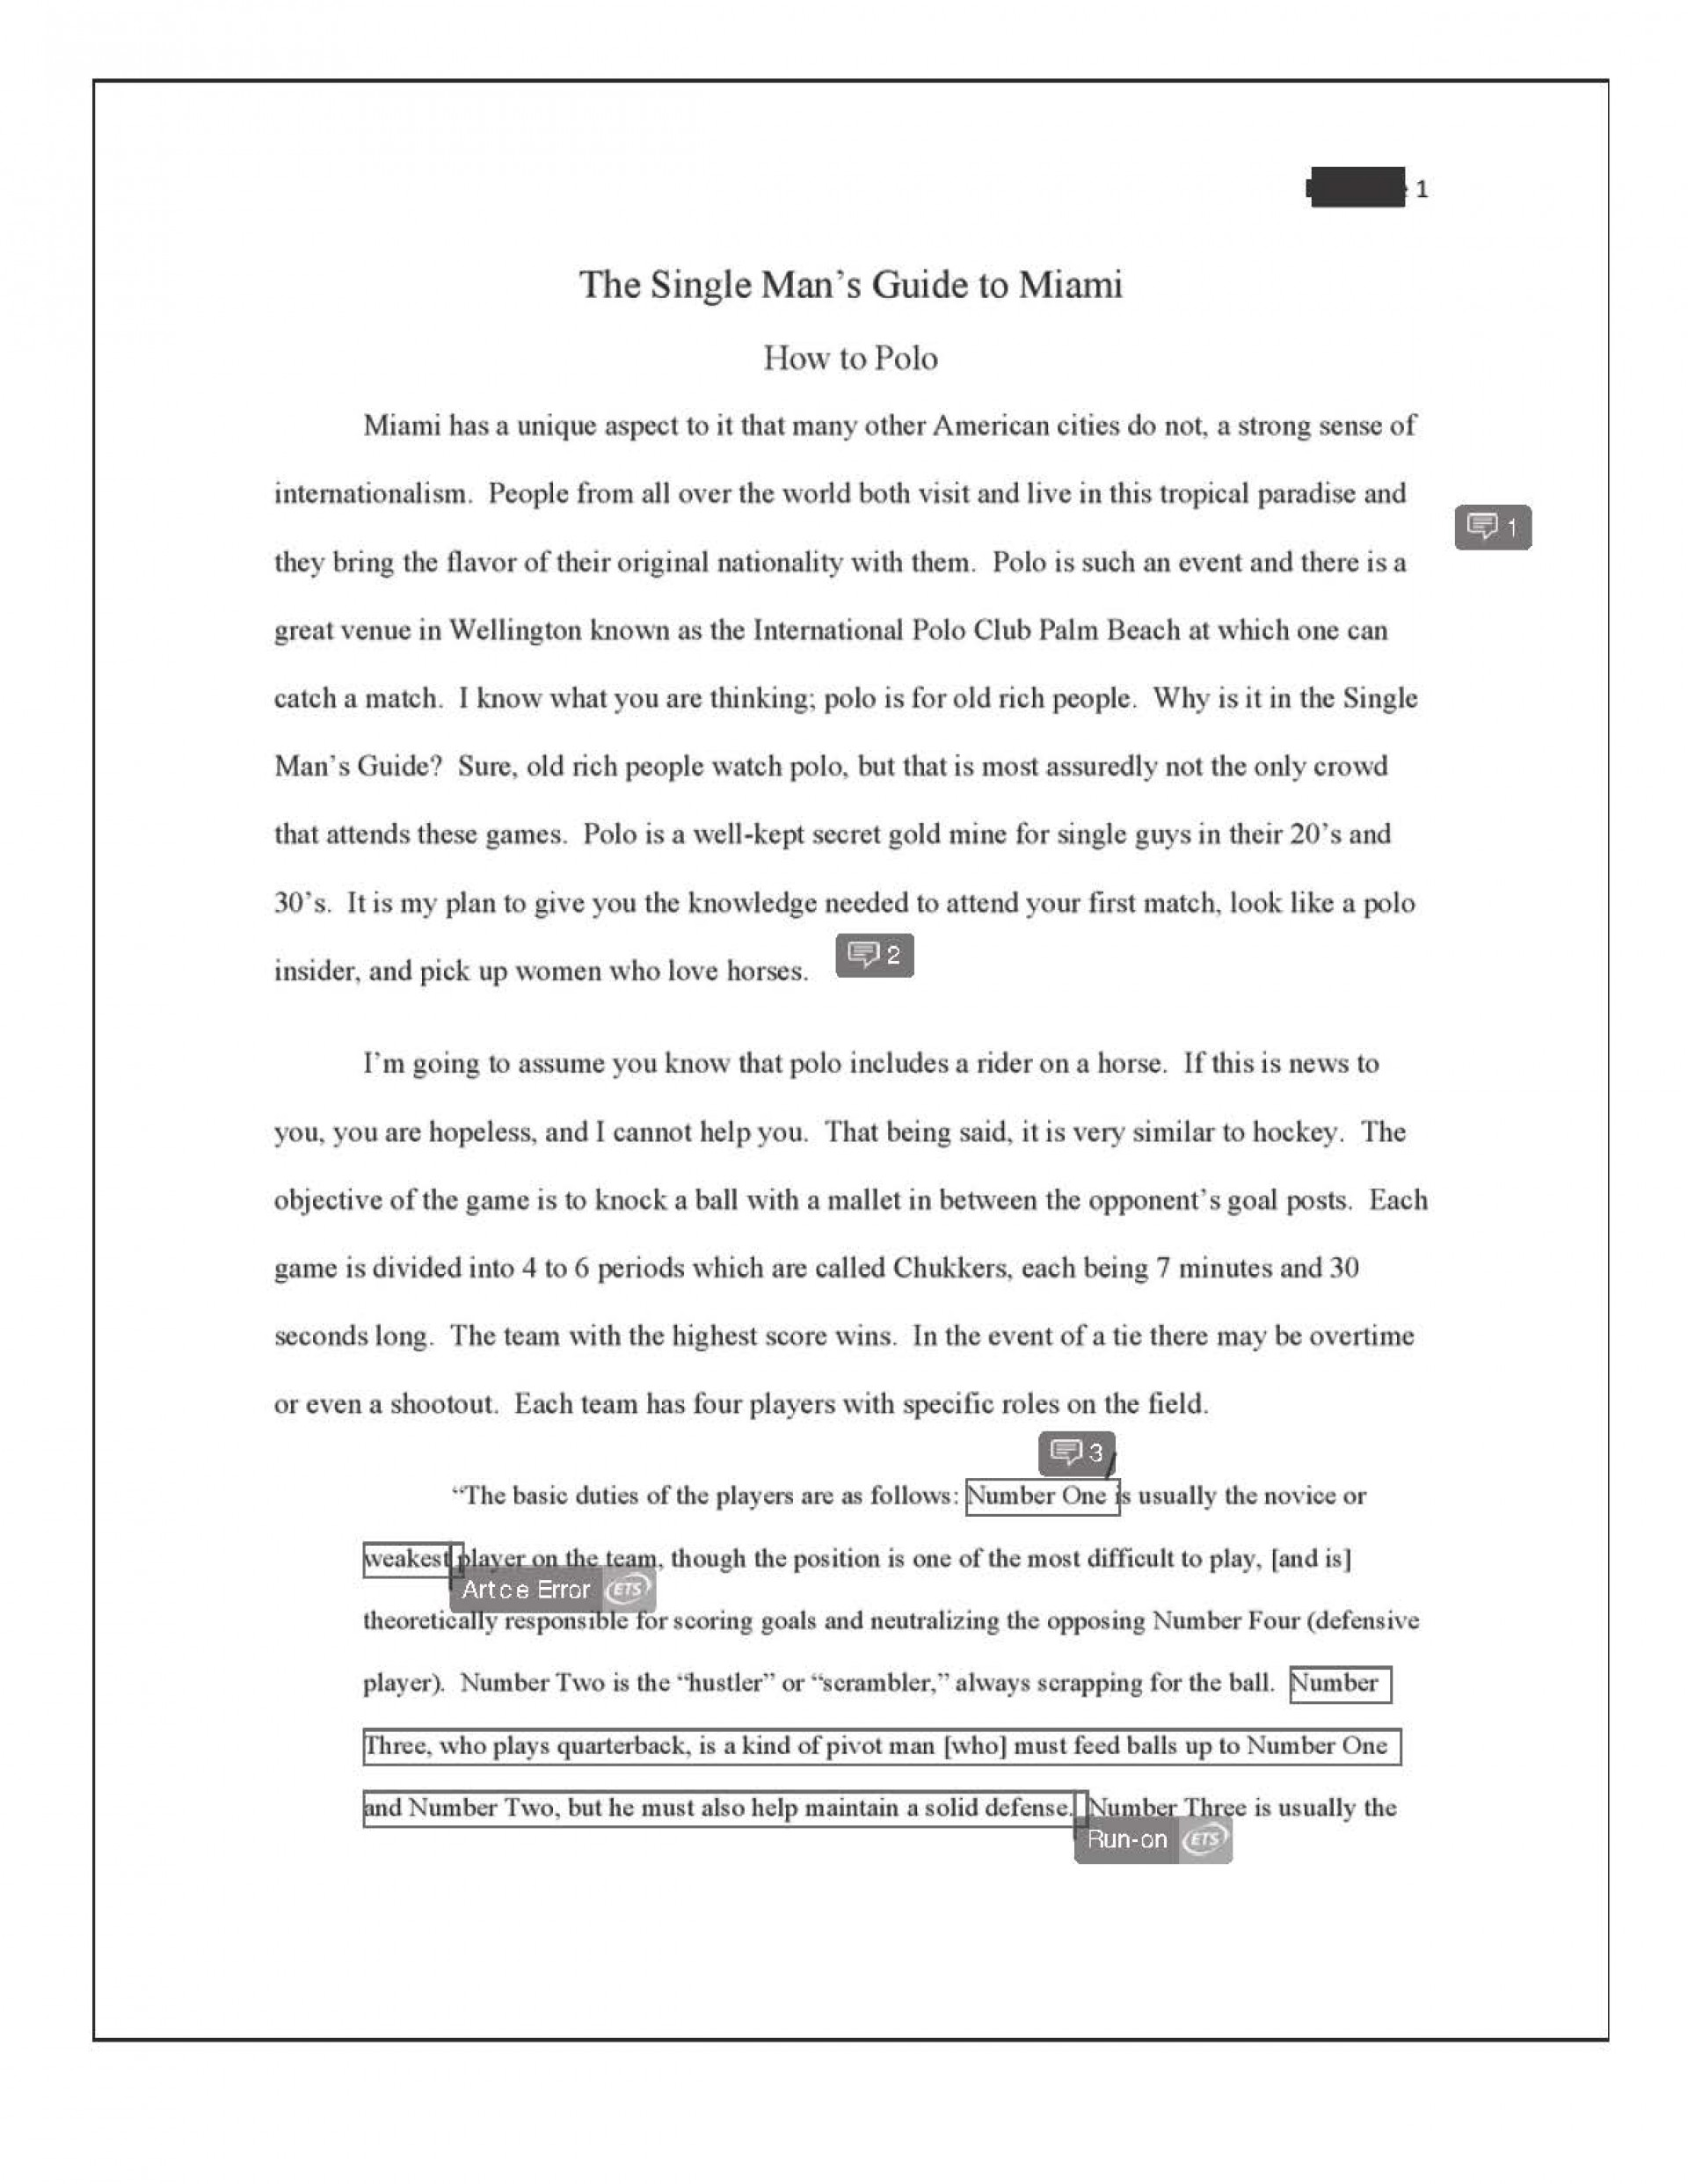 007 Informative Essay Kinds Of Writing Types Essays The Center In Hindi Final How To Polo Redacted P Pdf Task Slideshare Ppt Withs Wikipedia Dreaded Graphic Organizer Prompts Middle School 3rd Grade 1920